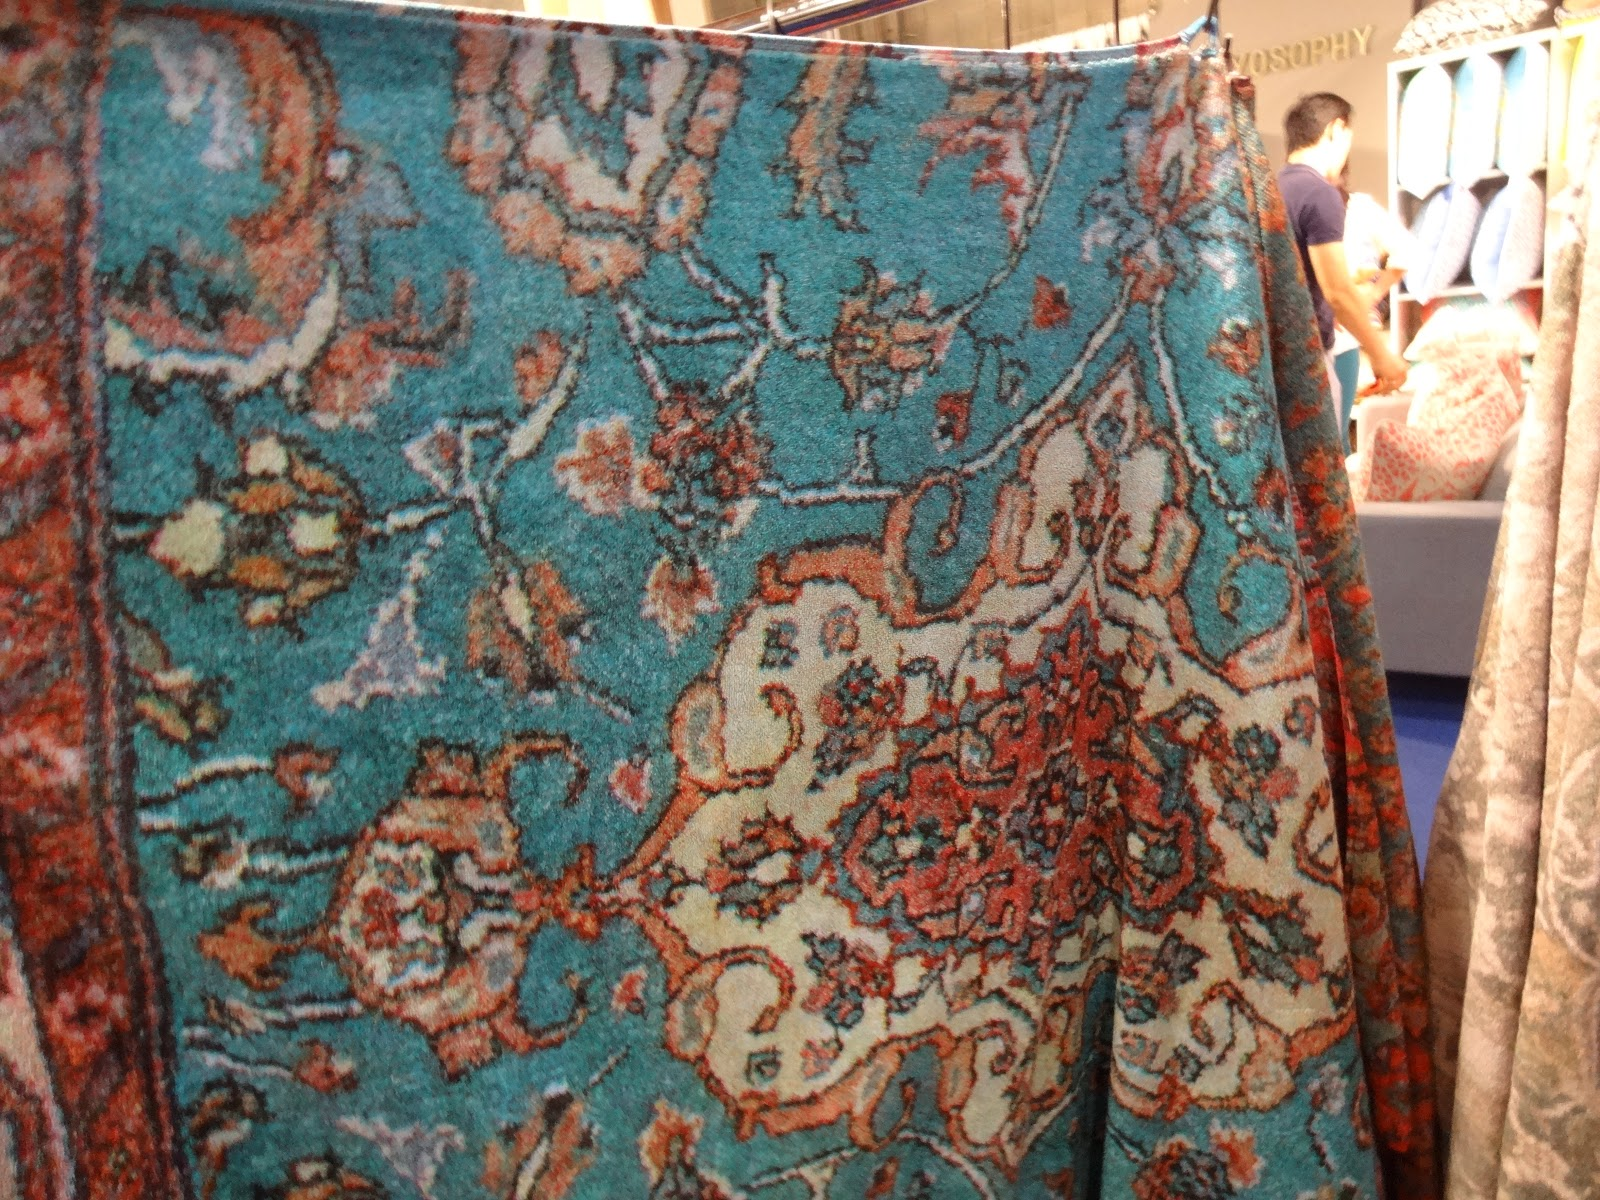 We Discovered The FRESCO Towel Line, Which Had The Most Vibrant And Fun  Bath Towels Weu0027ve Seen. These Towels Were So Richly Colored With Wonderful  Paisley ...